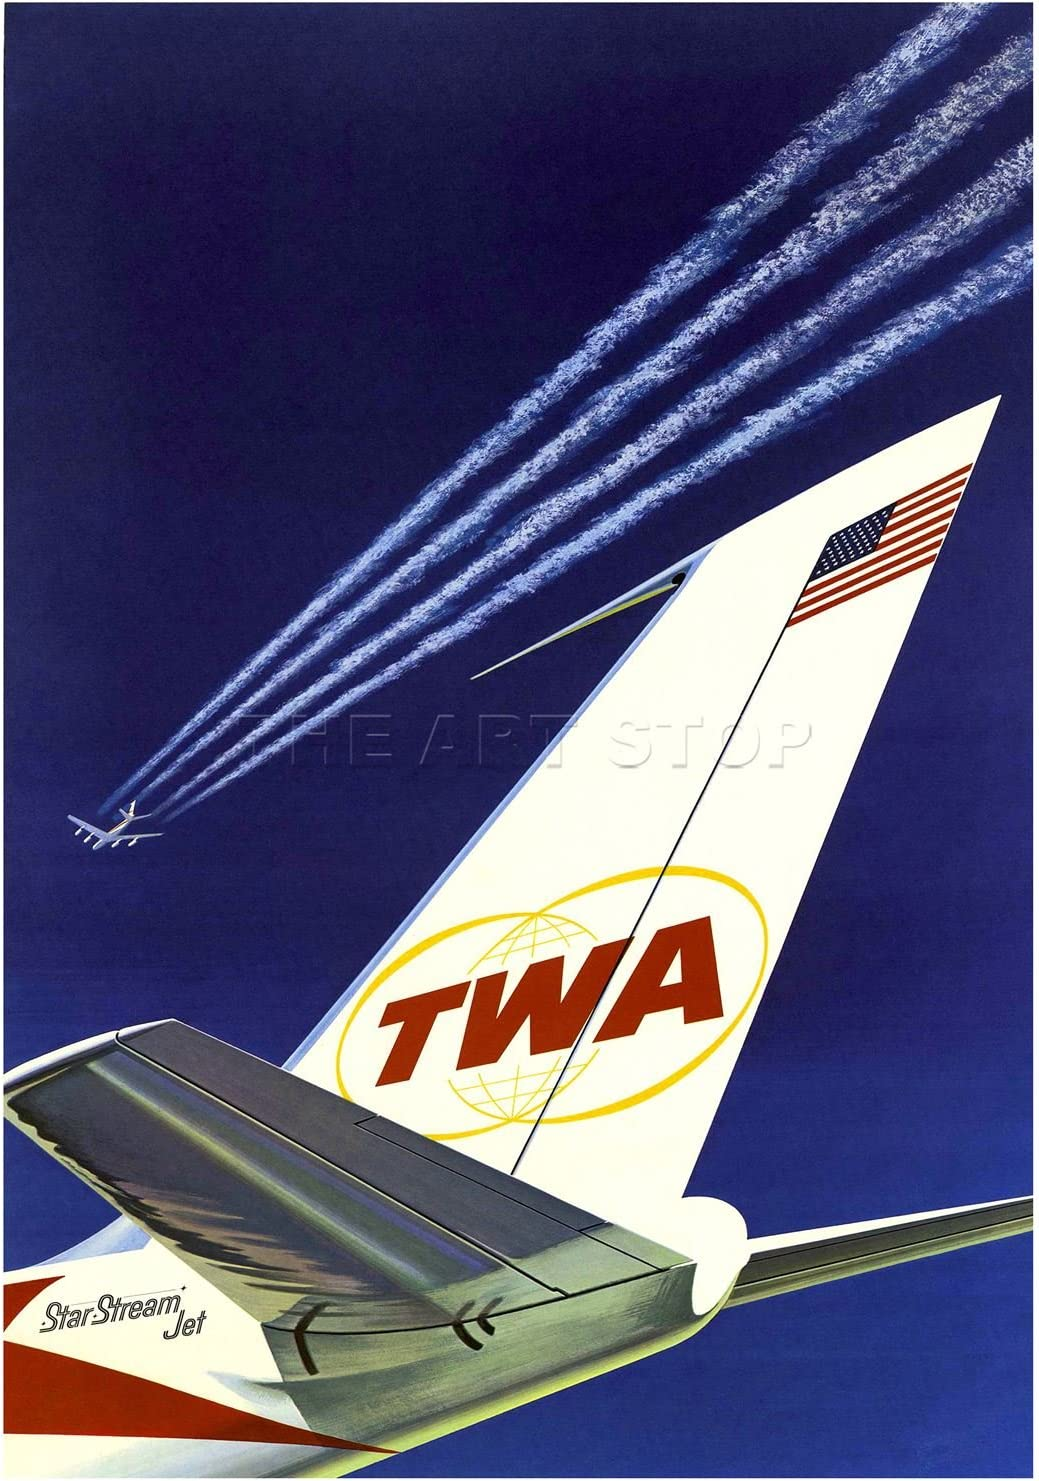 TWA AIRLINE STARS STRIPES AIRPLANE AEROPLANE VINTAGE ADVERT ART PRINT B12X582